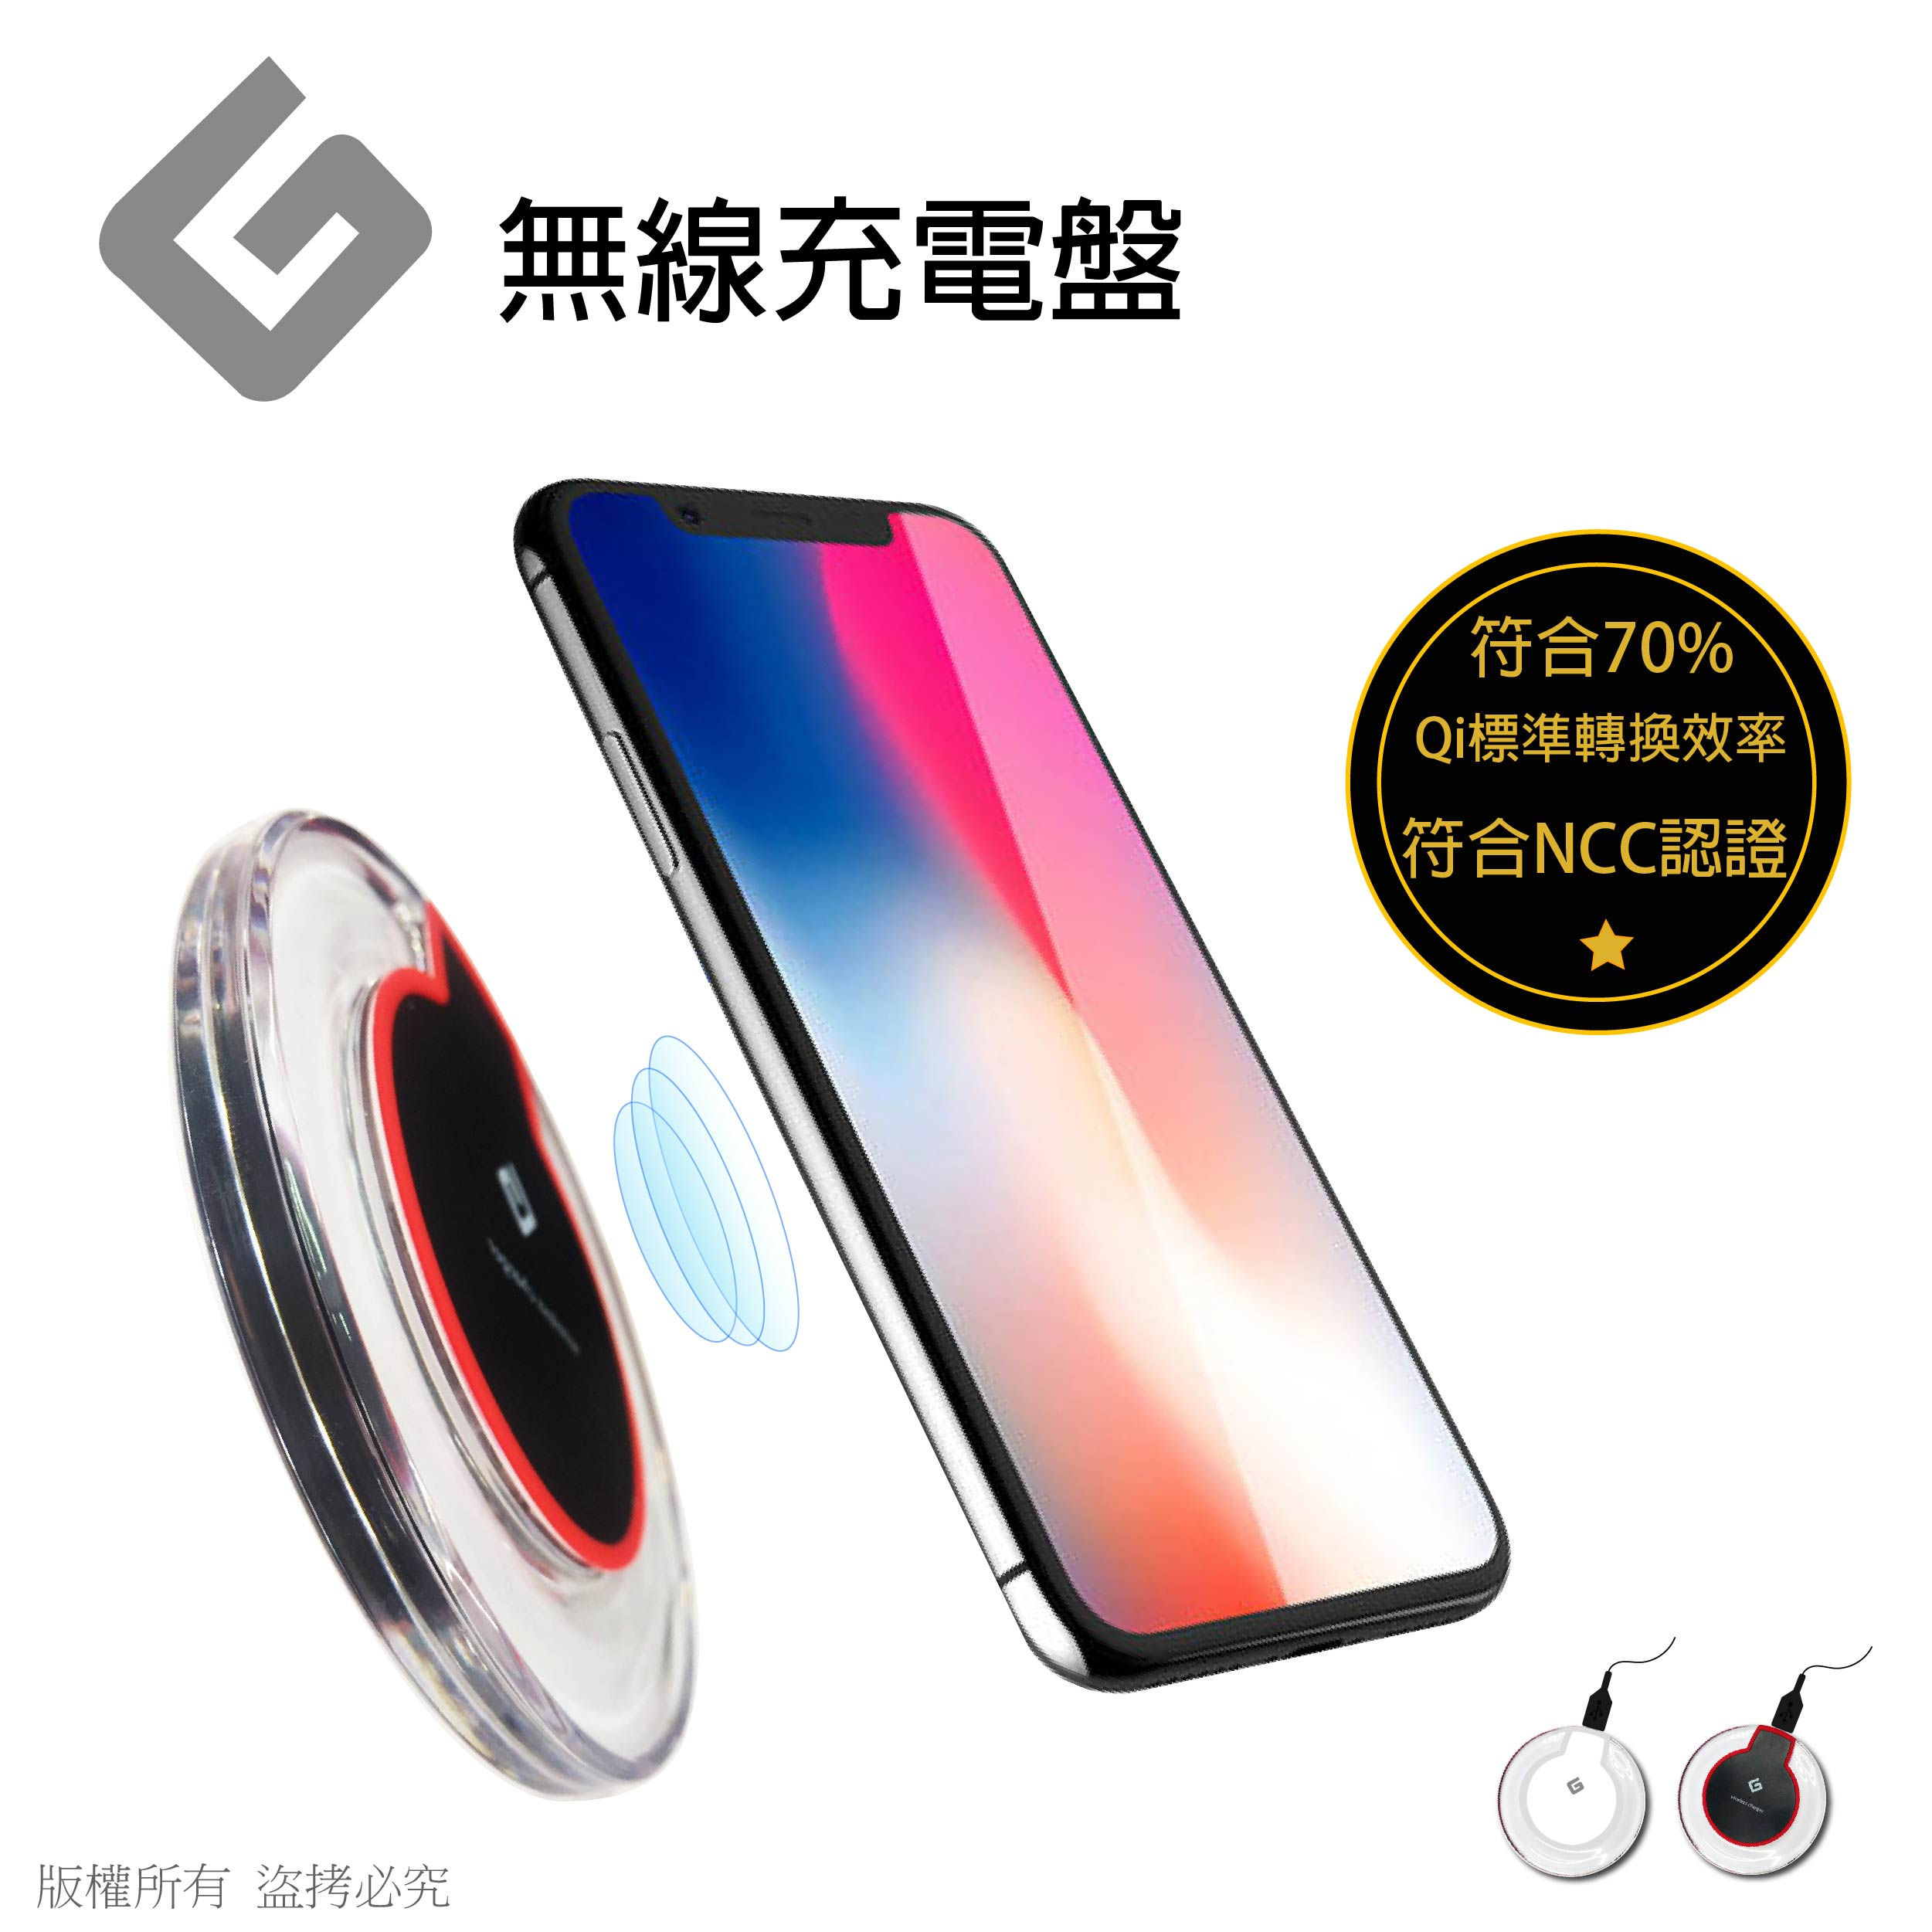 THE G 無線充電盤 超薄 QI 充電板 充電器 iPhone X / Xs / Note 9 / Note 8 S9 S9plus